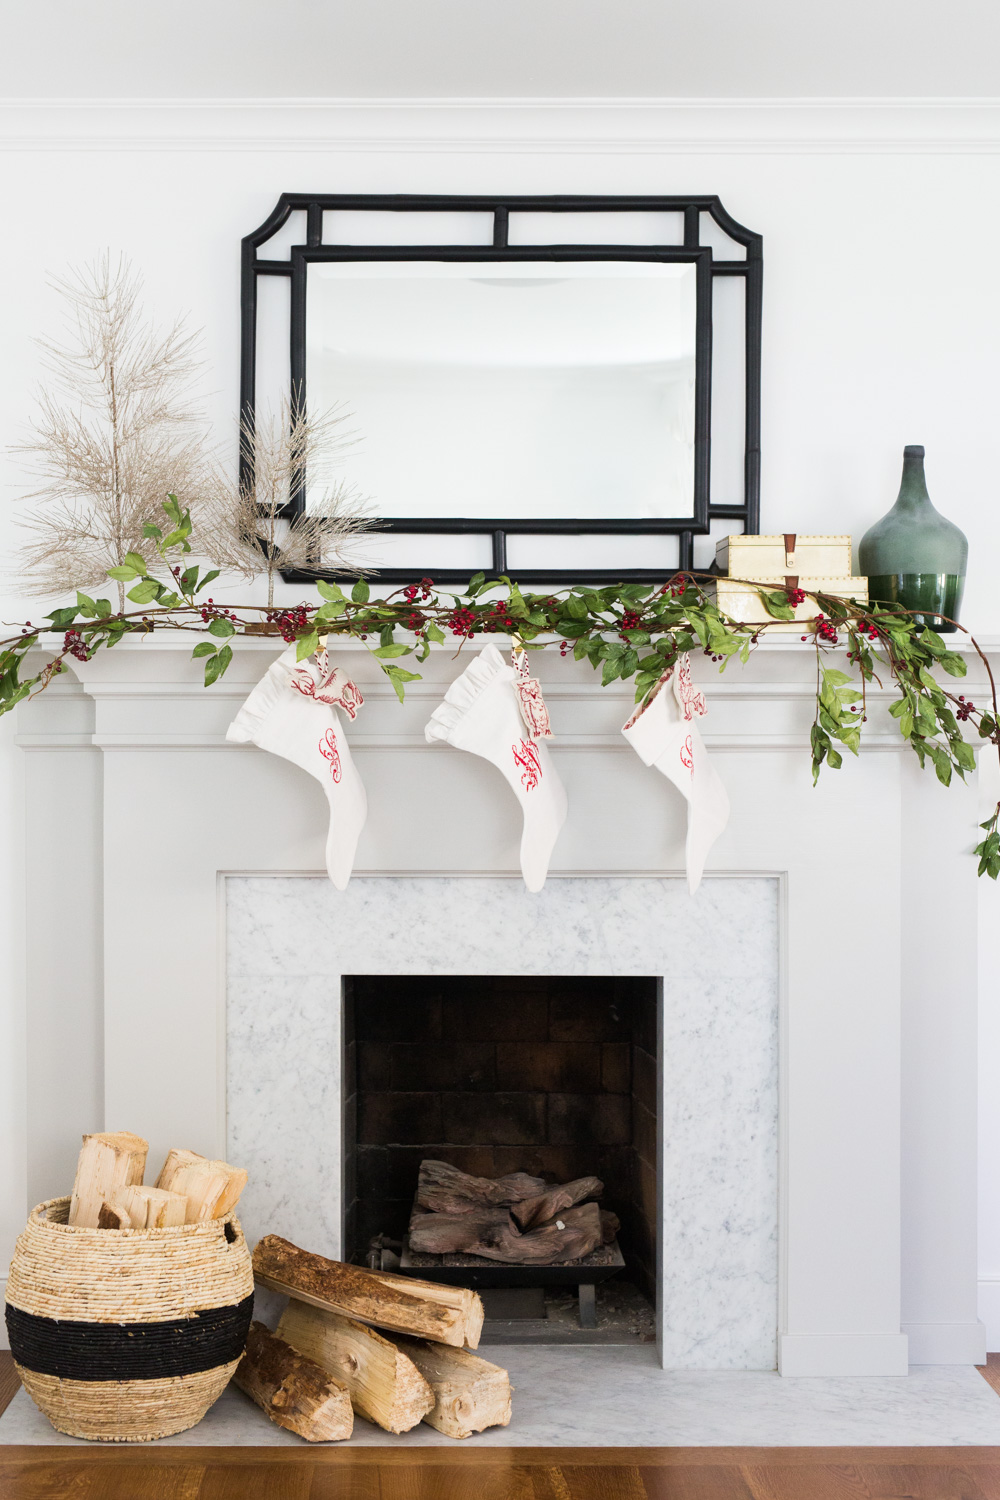 How to Style a Mantel for the Holidays